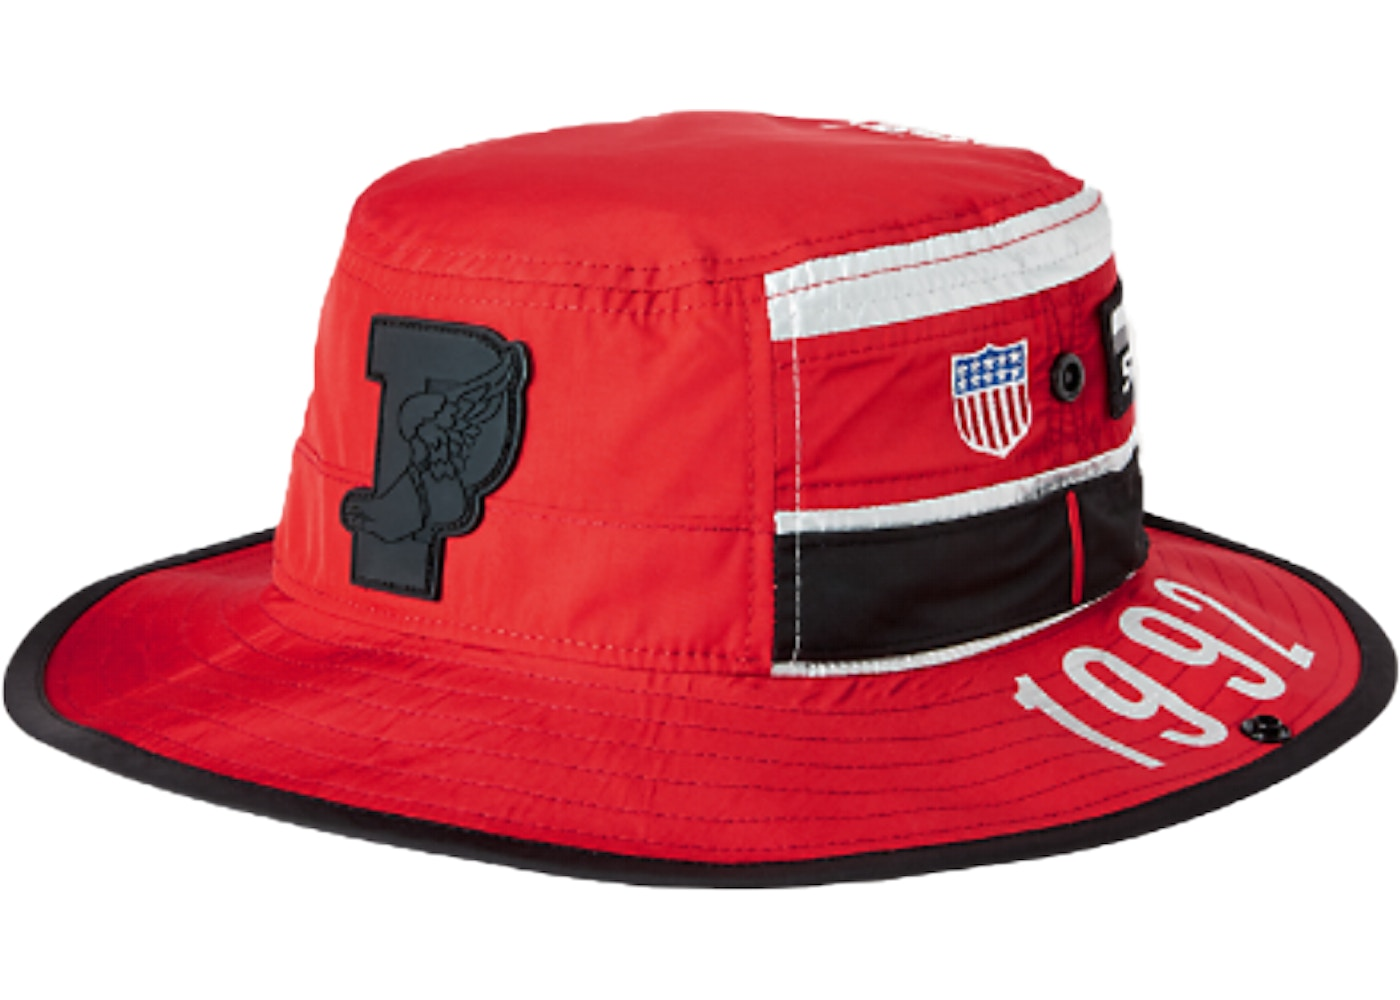 Polo Ralph Lauren Stadium Boonie Hat Injection Red Silver - FW18 9cfec885afe